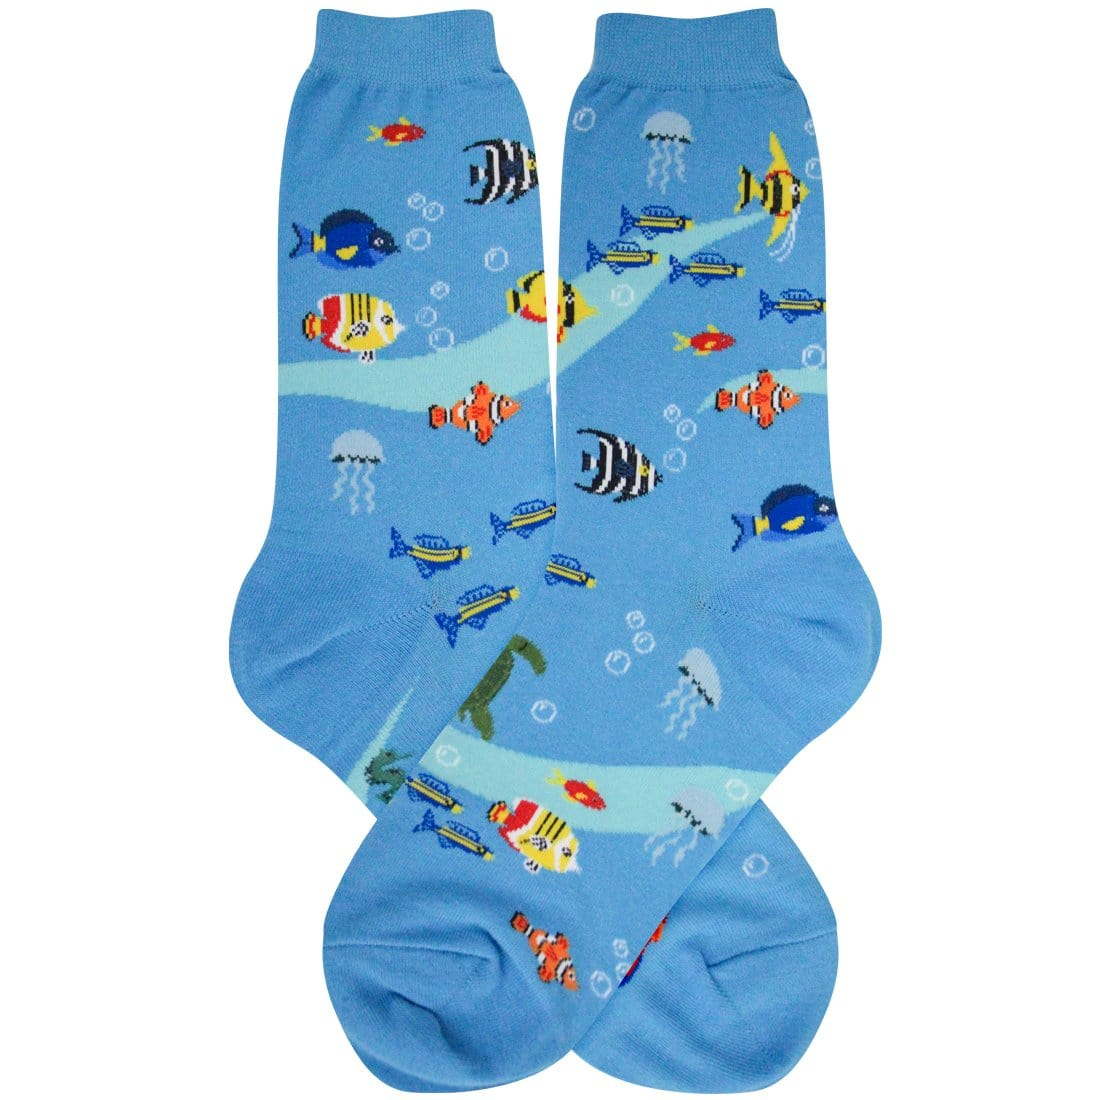 Aquarium Socks Women's Crew Sock